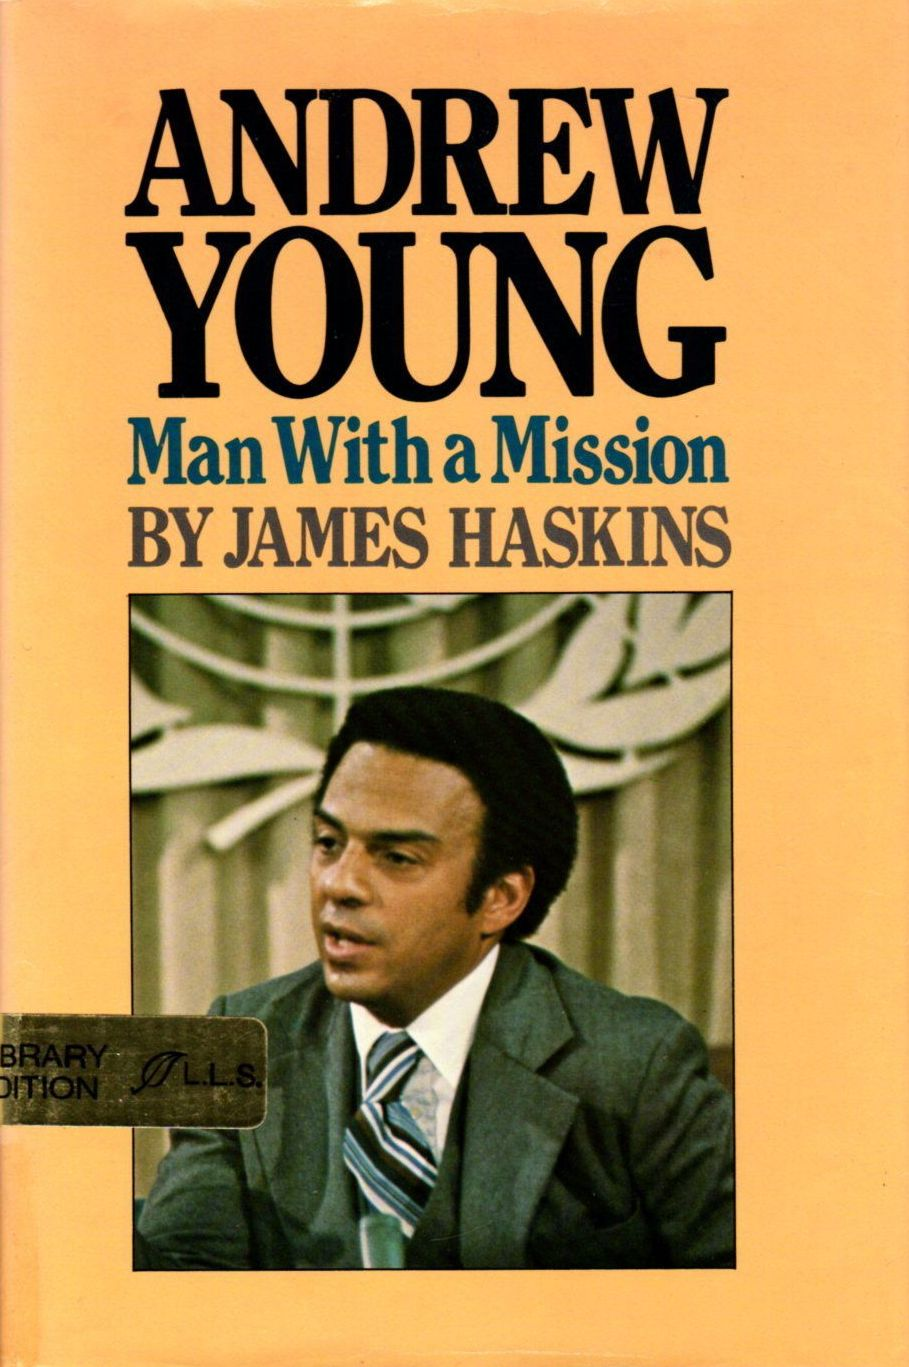 Click for a larger image of Andrew Young, Man With a Mission